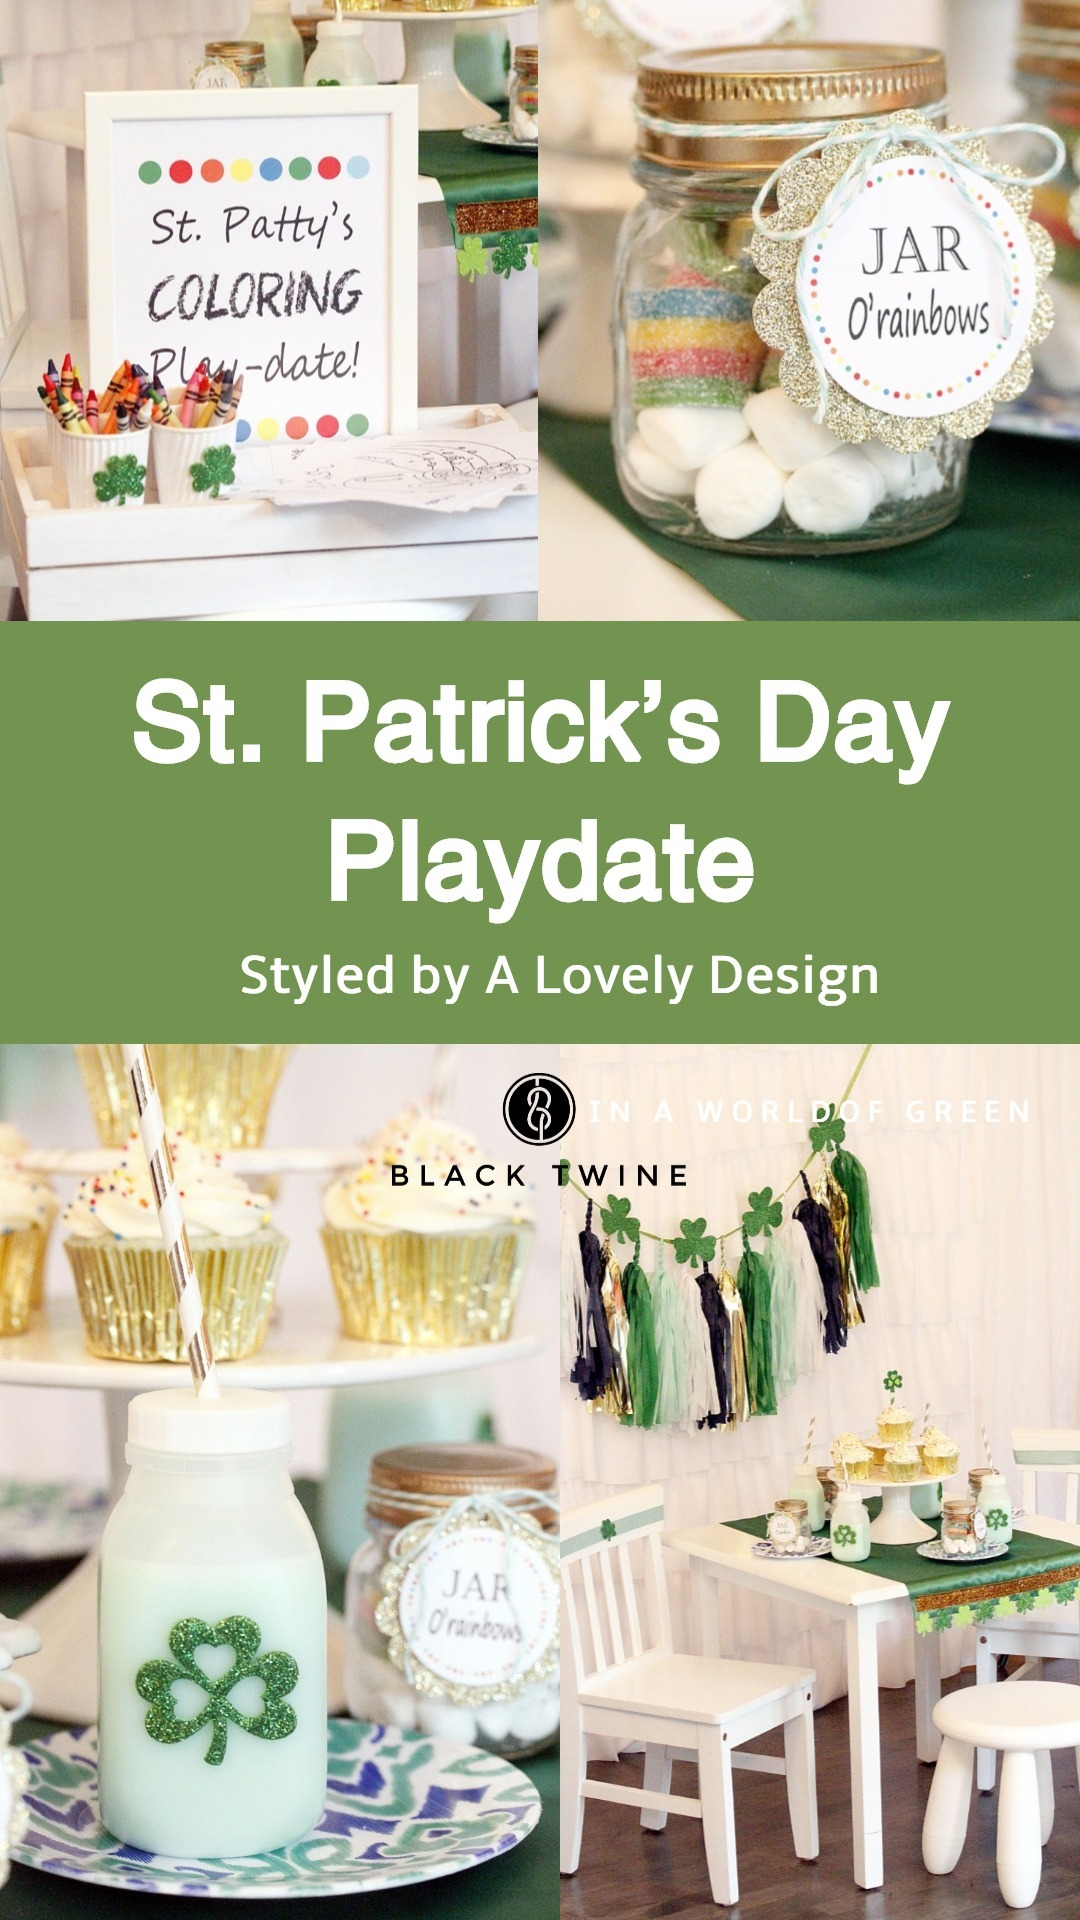 St. Patrick's Day Play Date styled by A Lovely Design | Black Twine